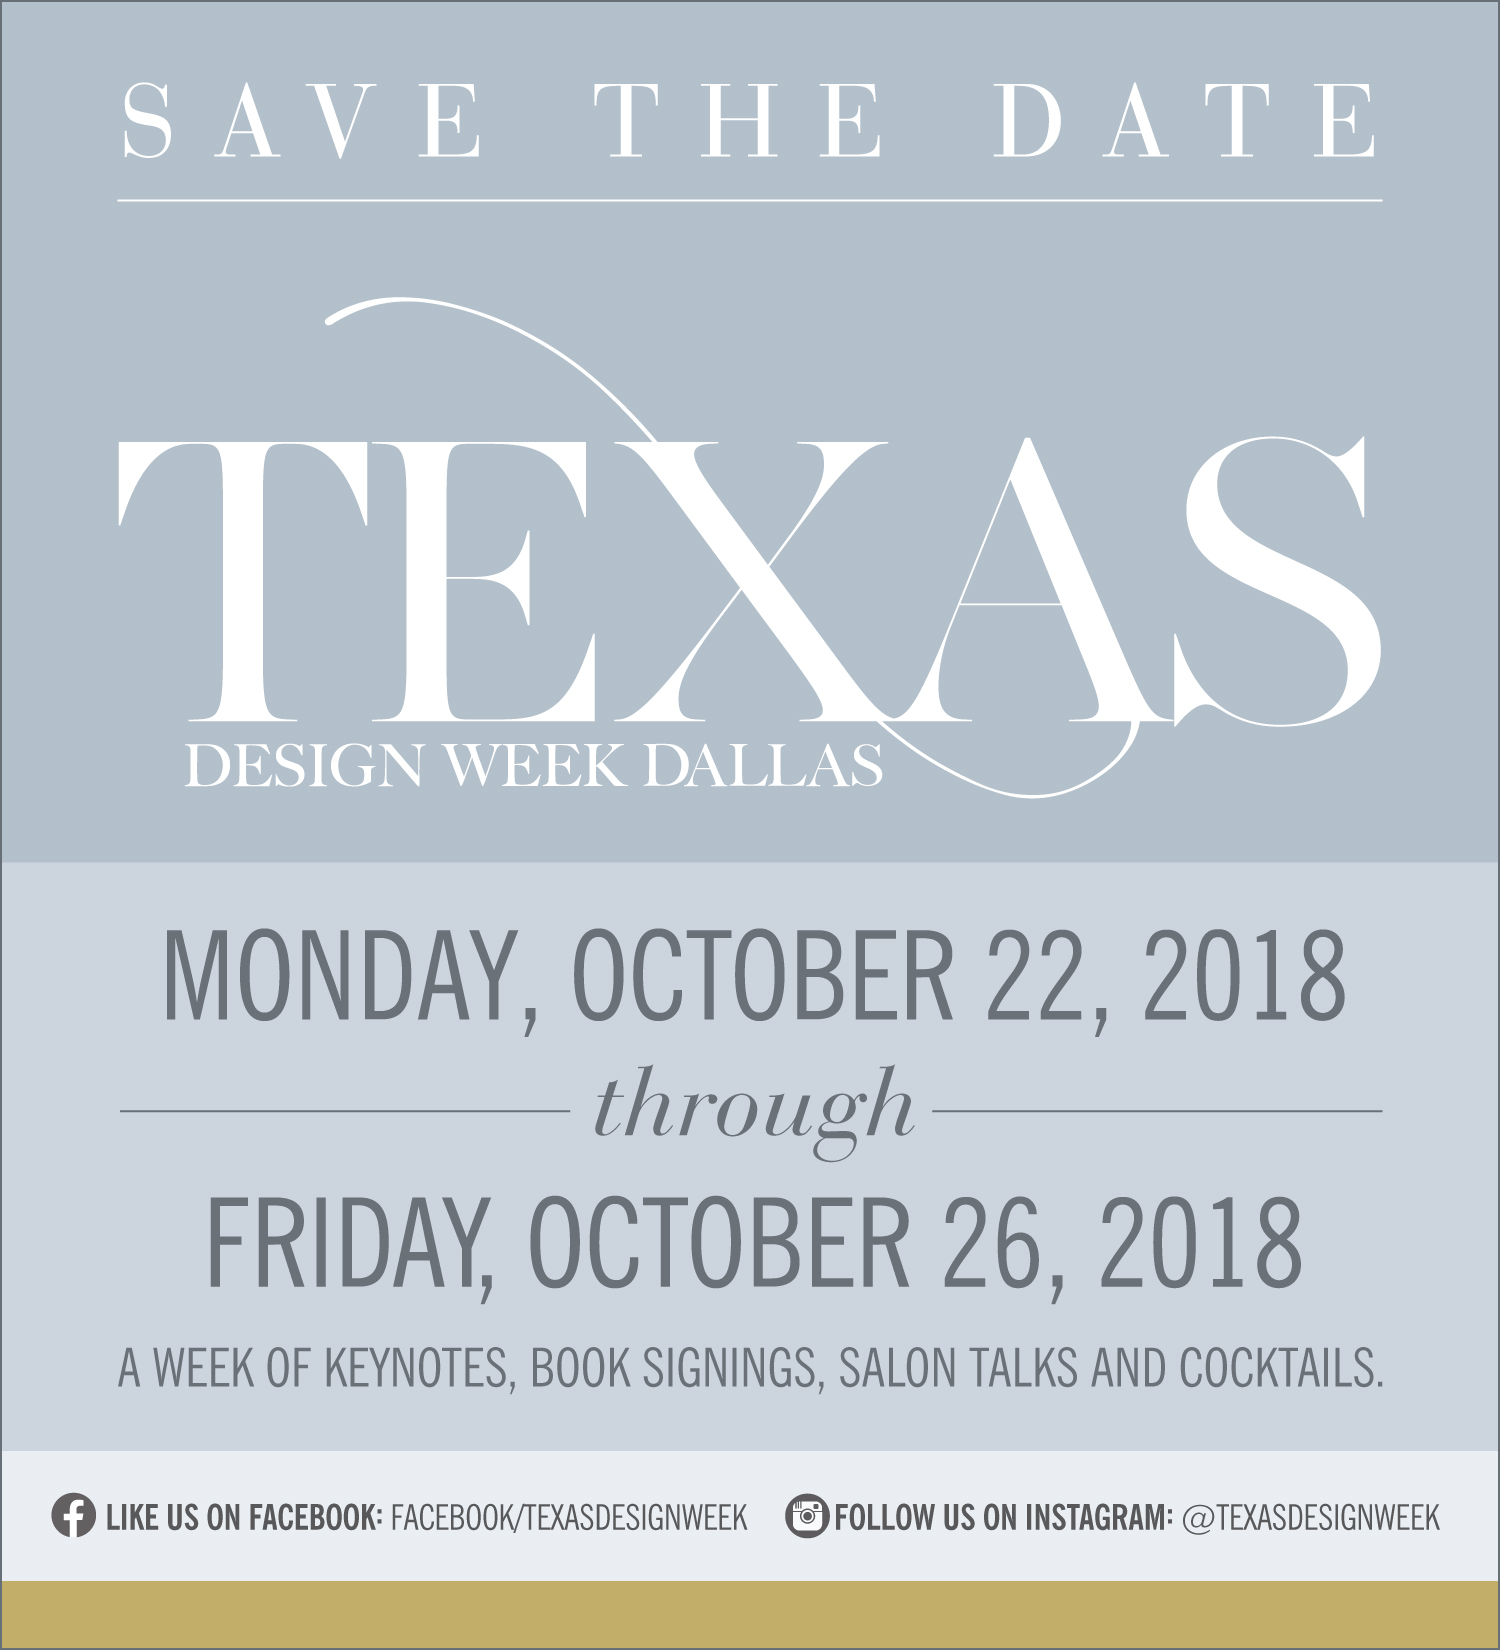 Texas Design Week Dallas - Save the Date